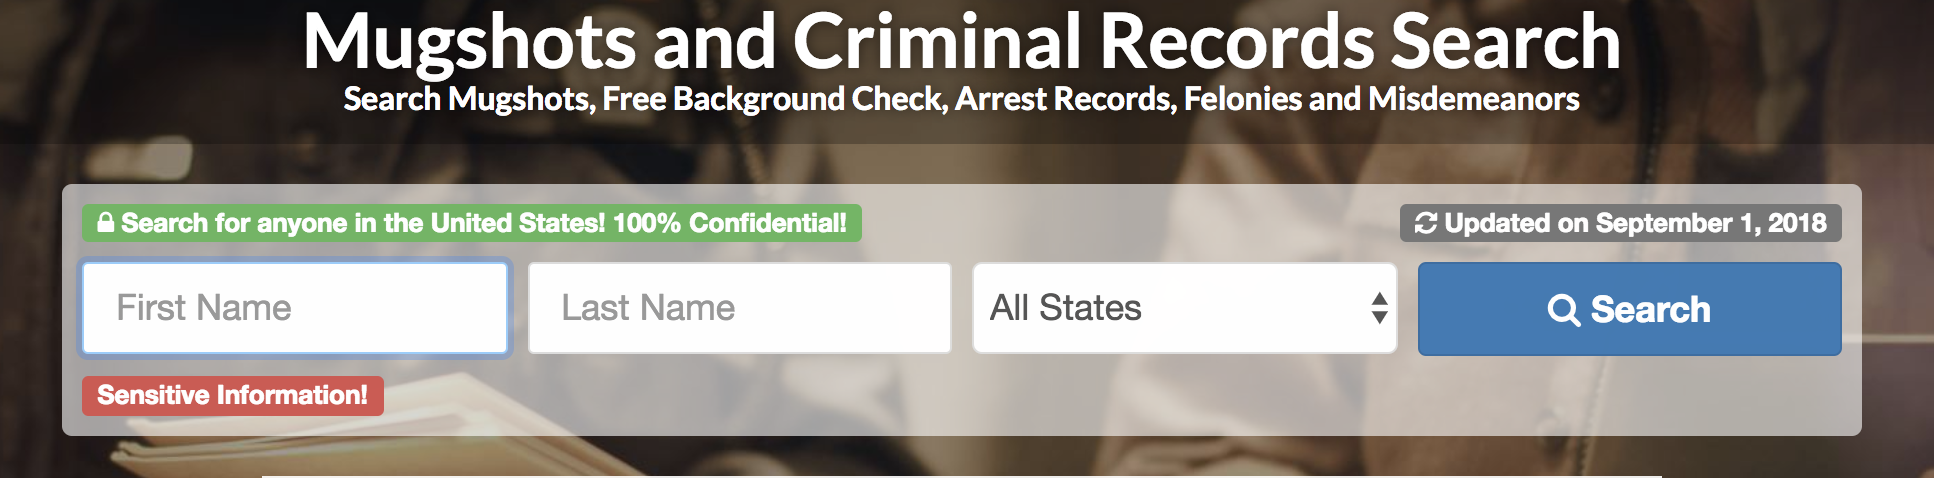 Online Mugshot Search, How to Find Mugshots Online